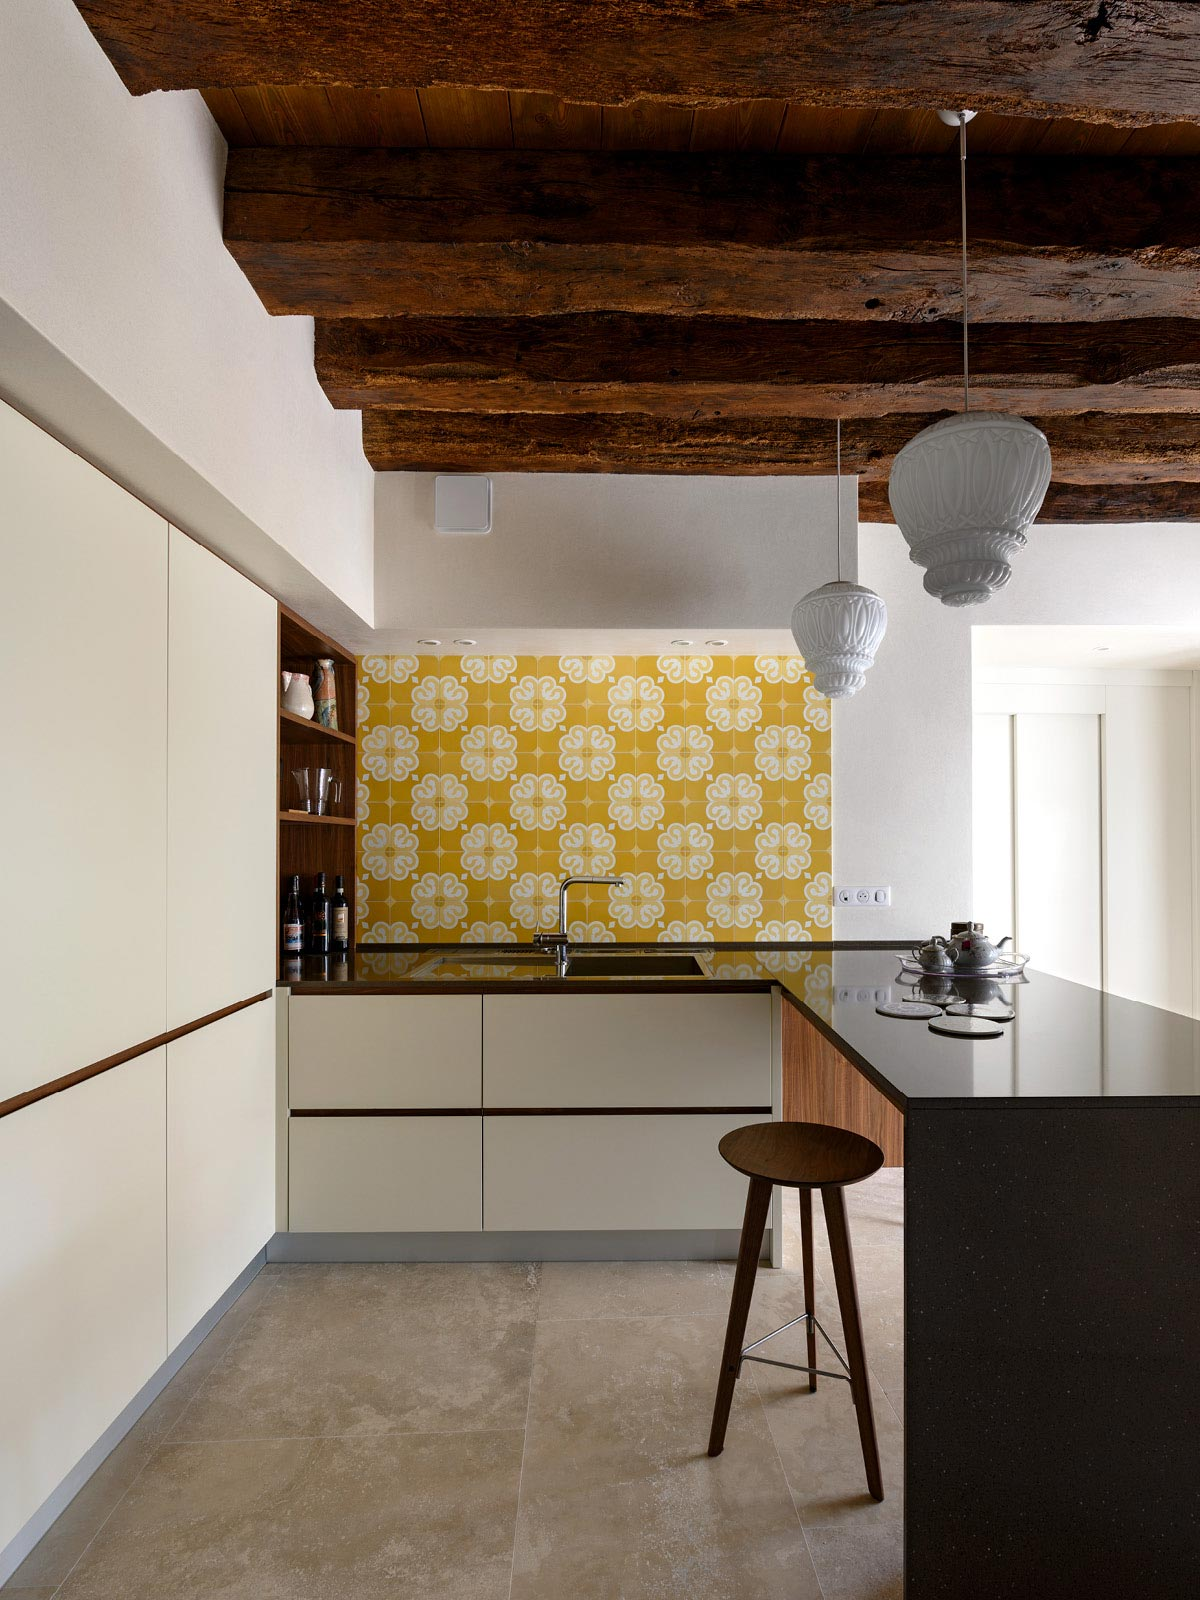 Maison Forte /Houte-Savoie, France – Project by Bertoncello Architetti Associati Painted kitchen with American black walnut details